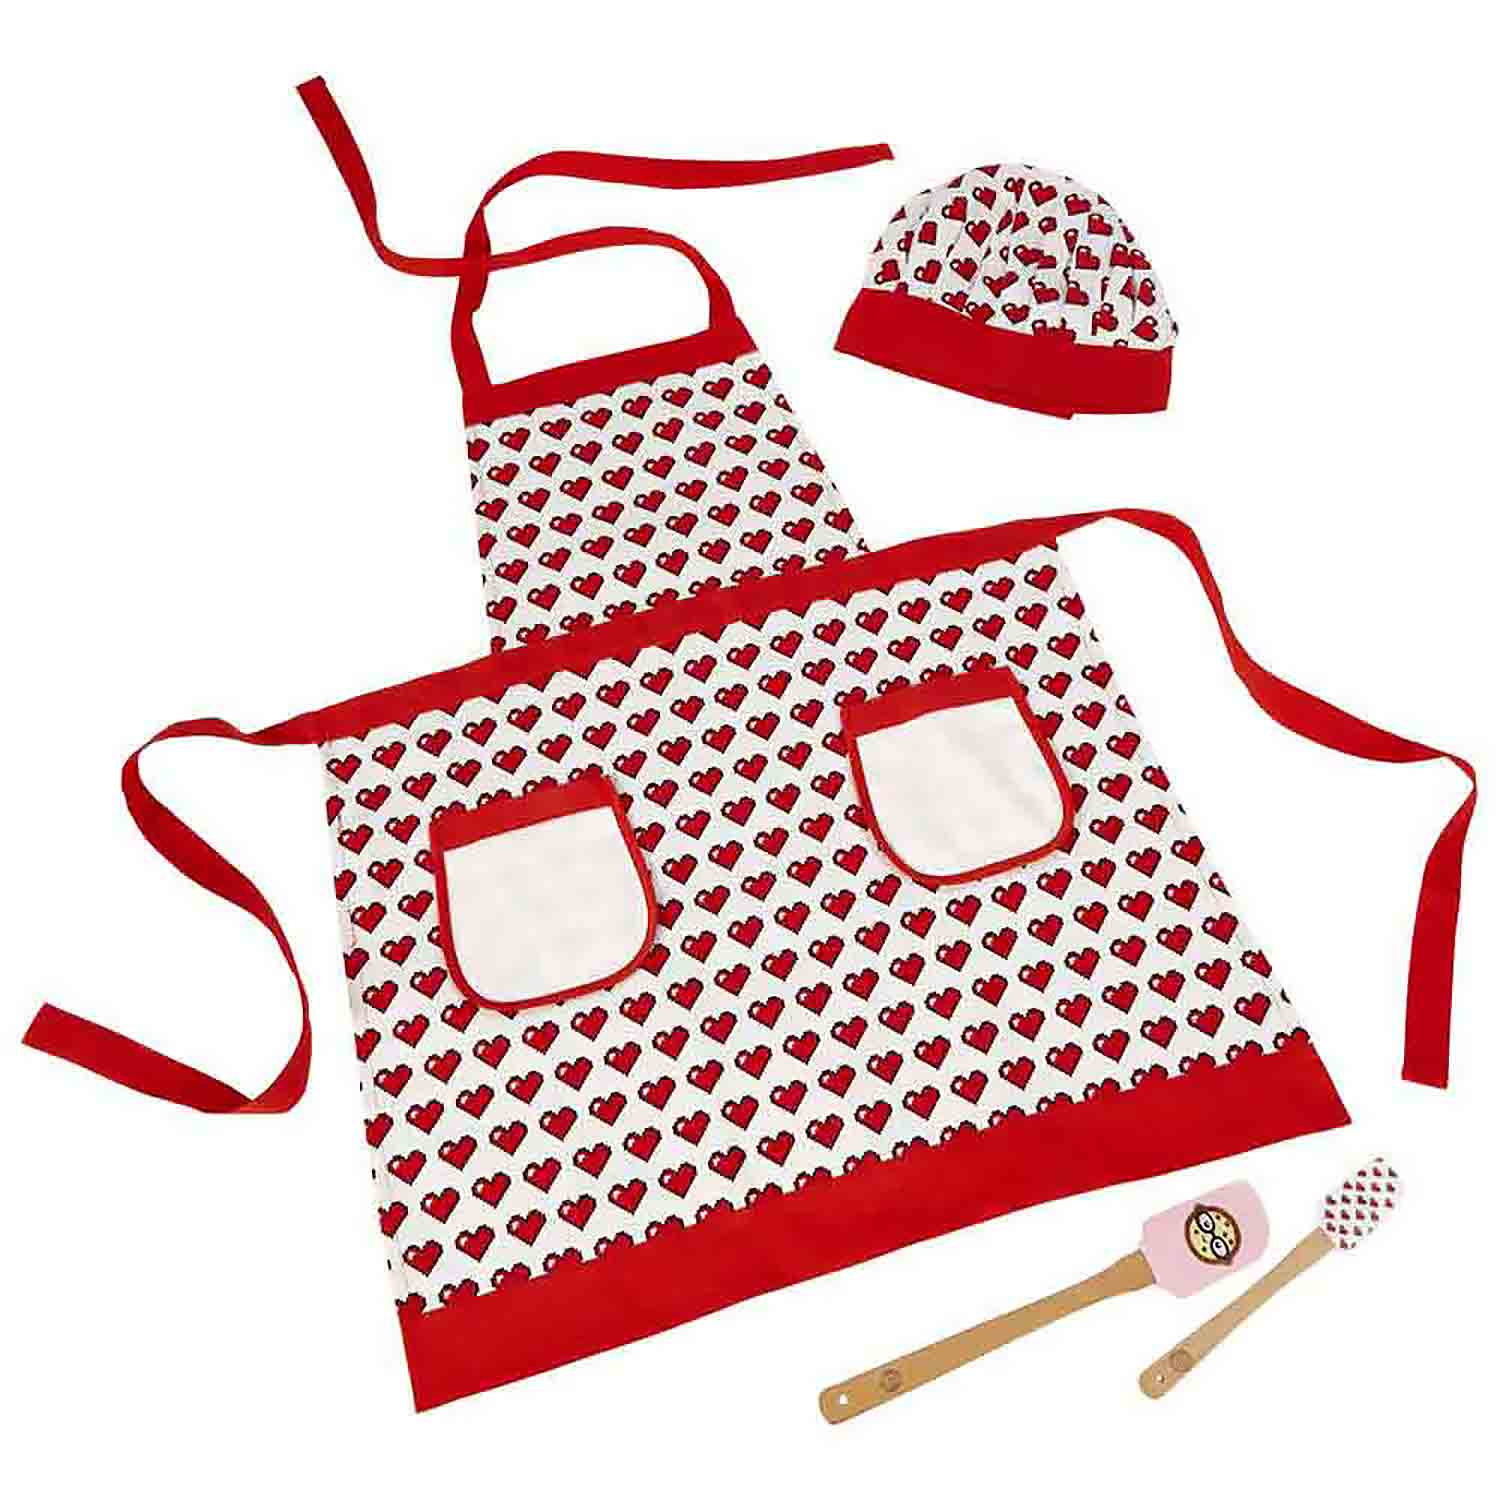 Rosanna Pansino Baking Set